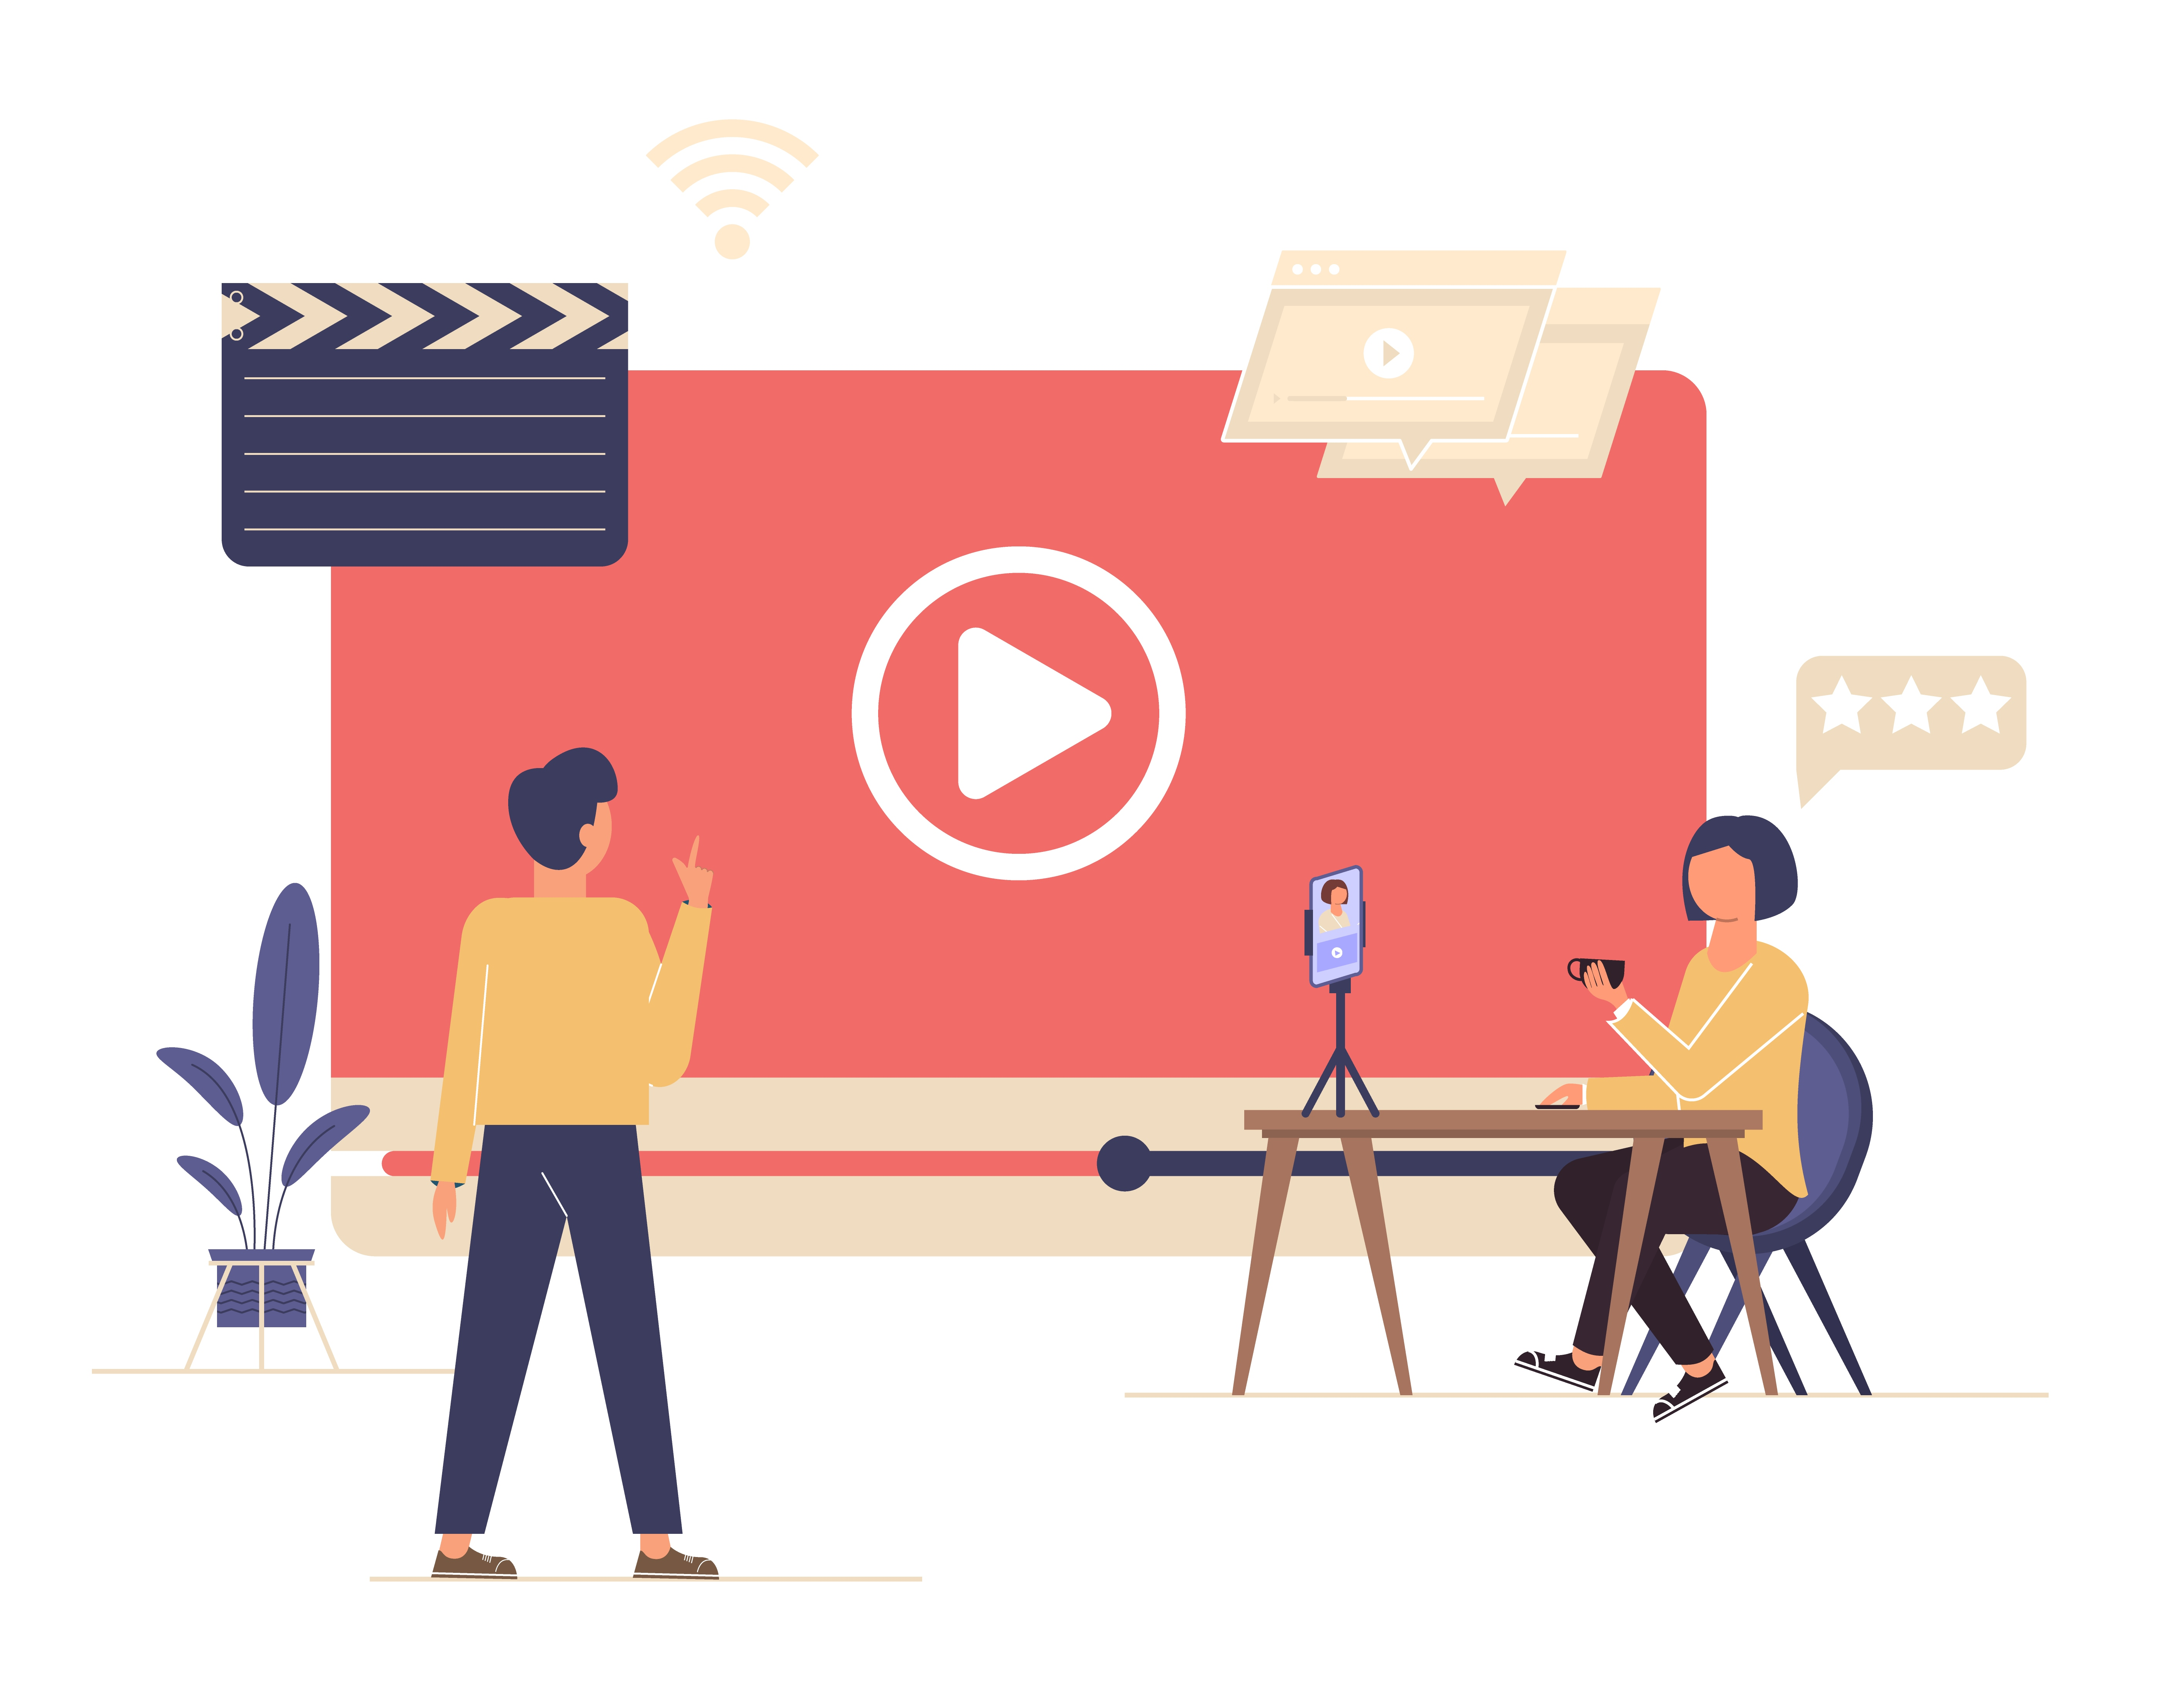 interactive-story-onboarding-videos